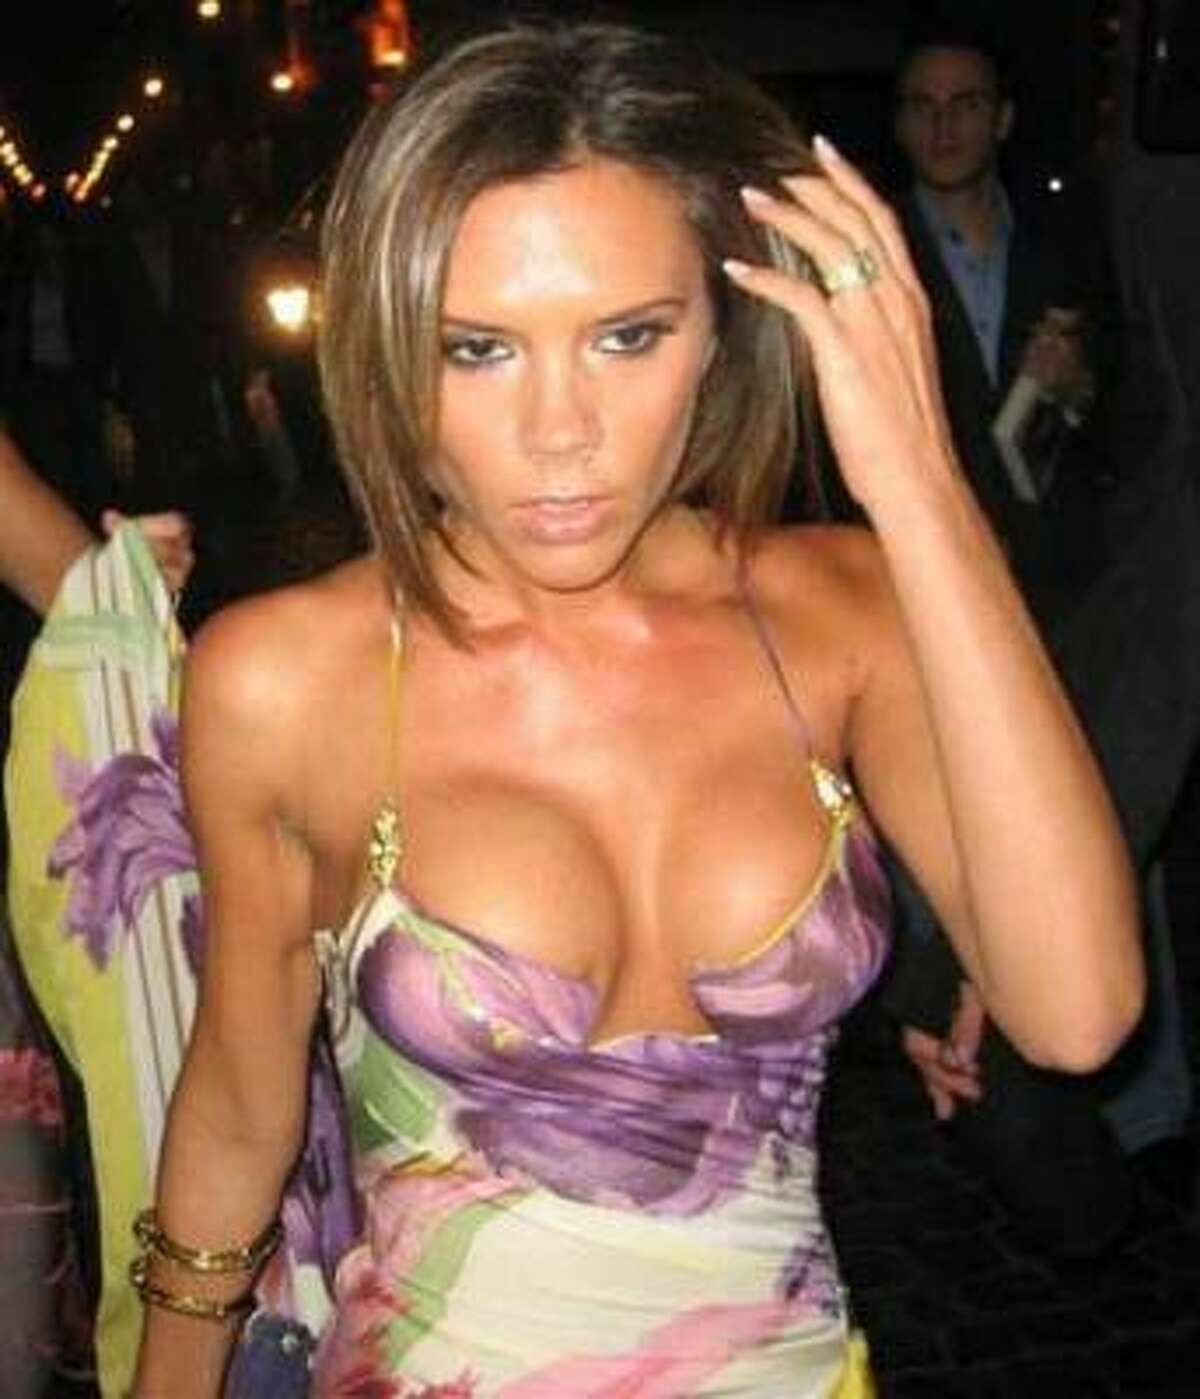 Victoria Beckham's implants are too big for her petite body.